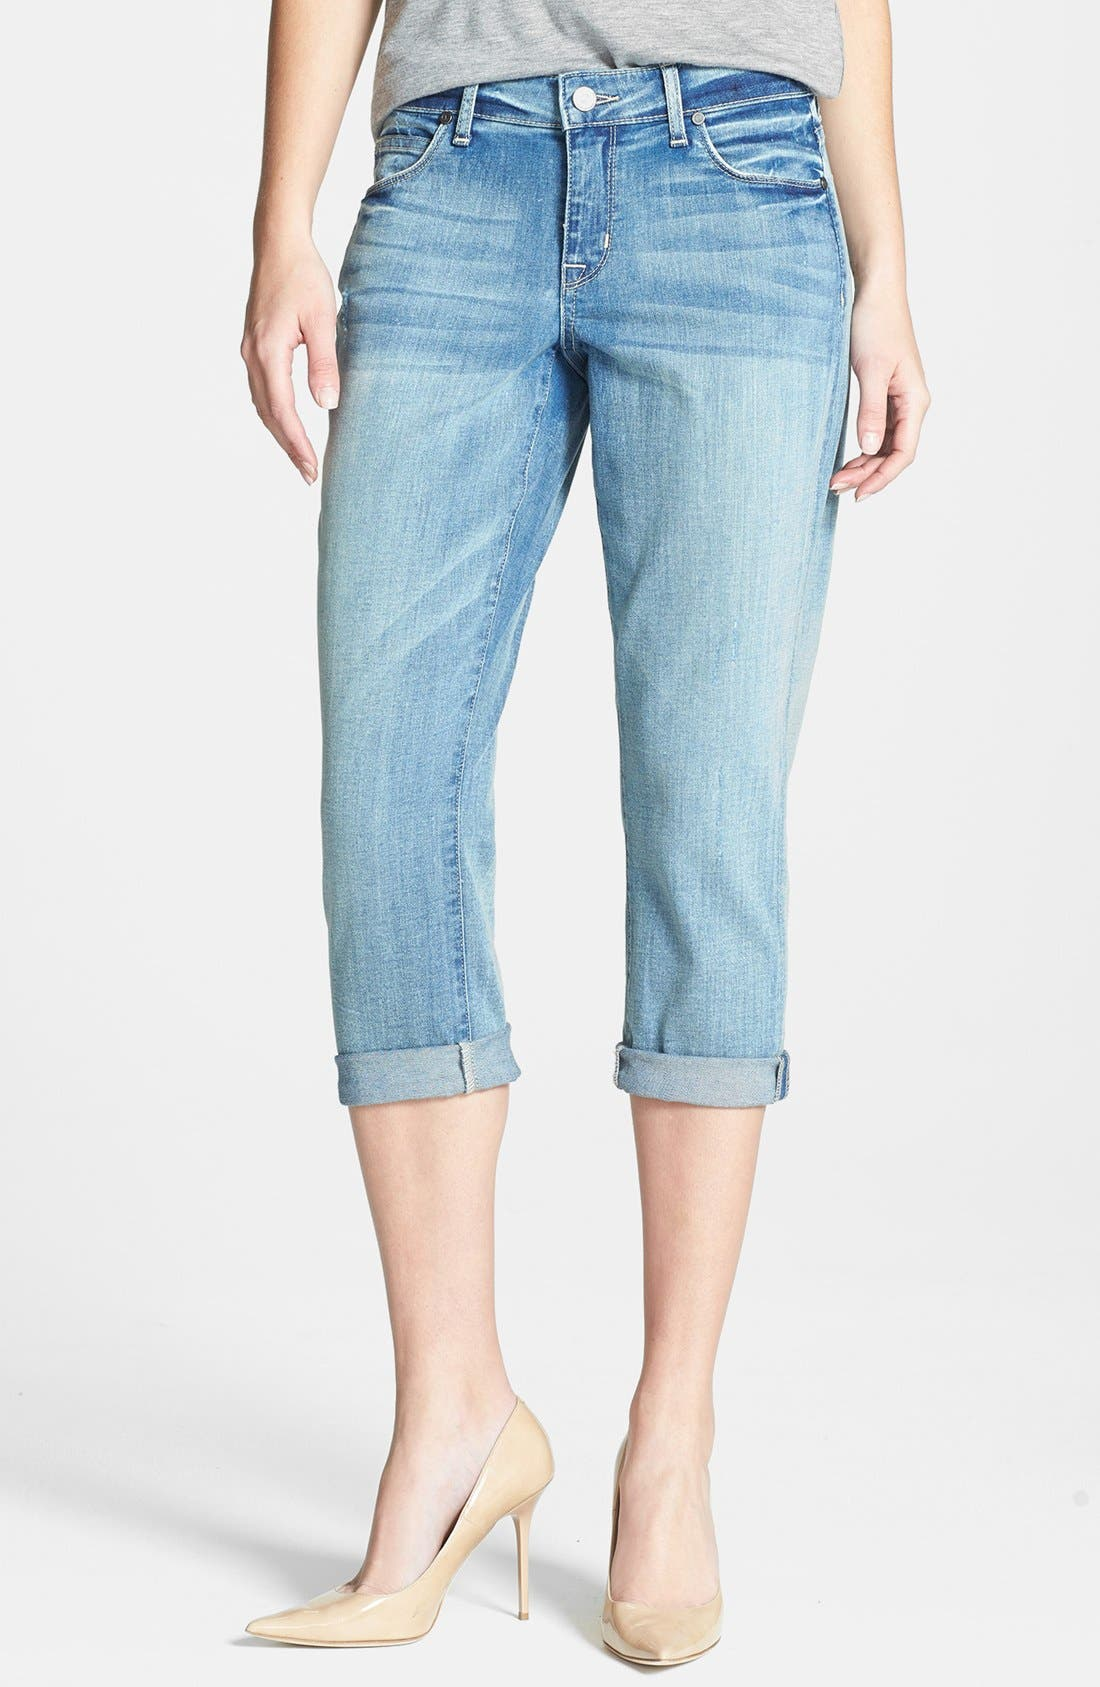 Main Image - CJ by Cookie Johnson 'Rejoice' Stretch Crop Boyfriend Jeans (Simpson)